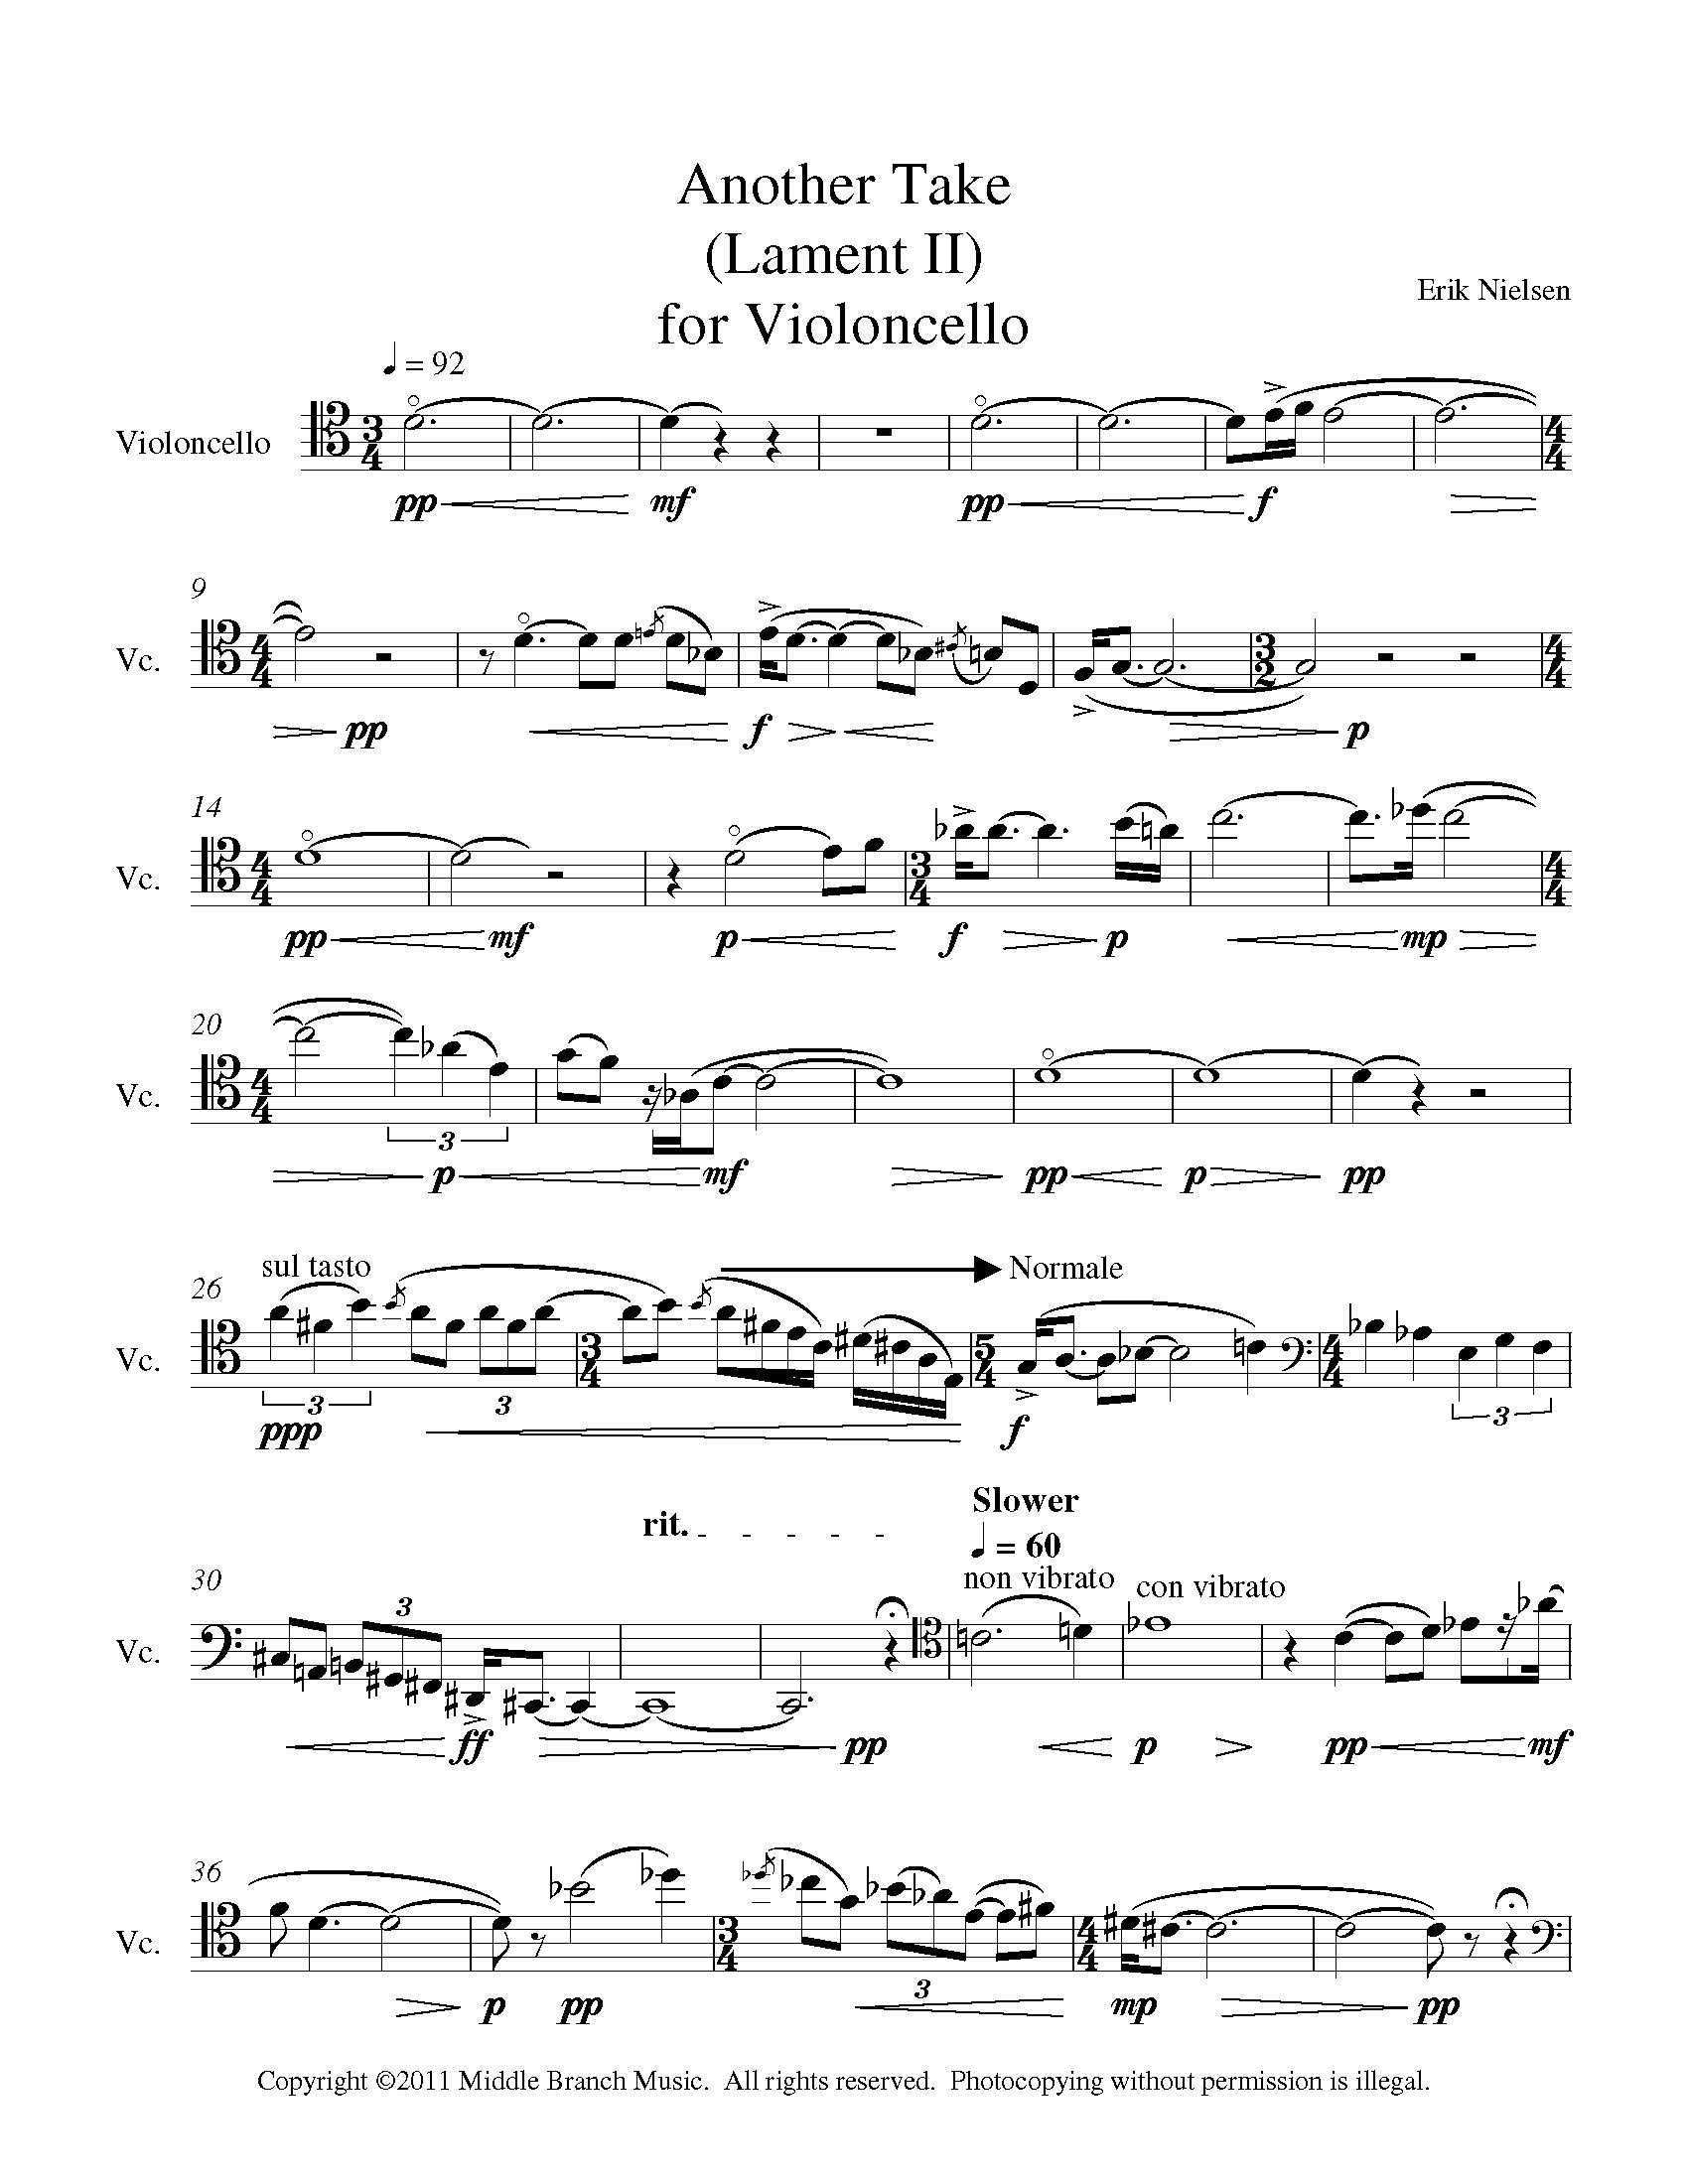 Another Take for Violoncello